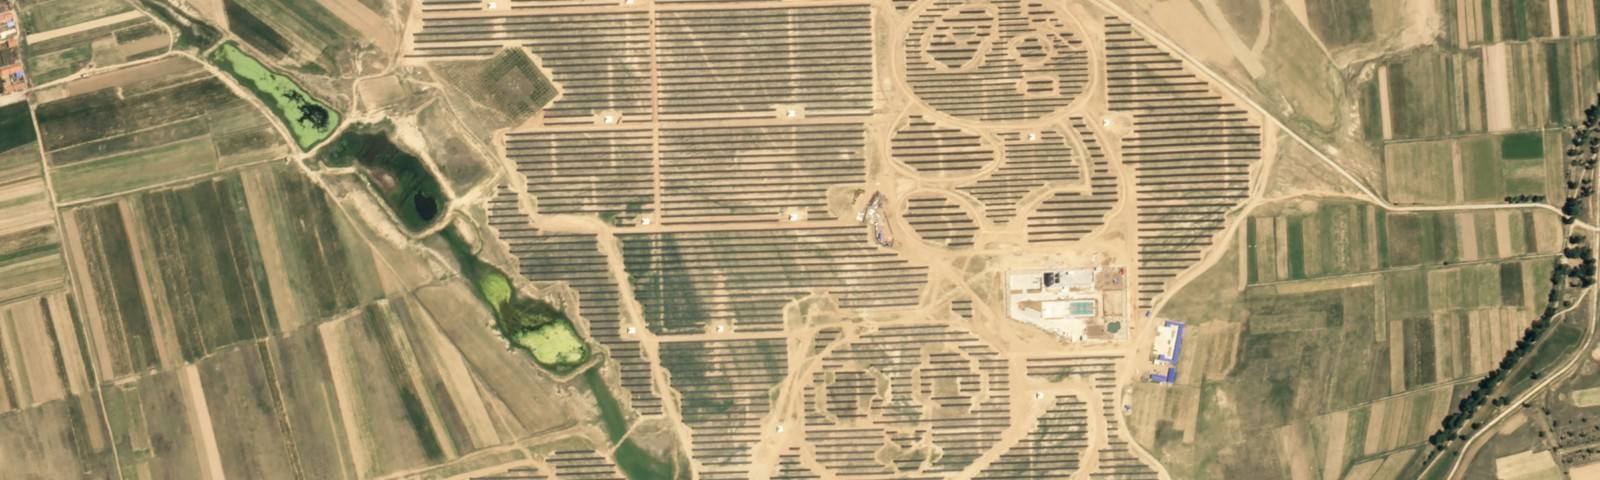 Solar farm in Daton, China © 2017. Planet Labs Inc. All Rights Reserved.